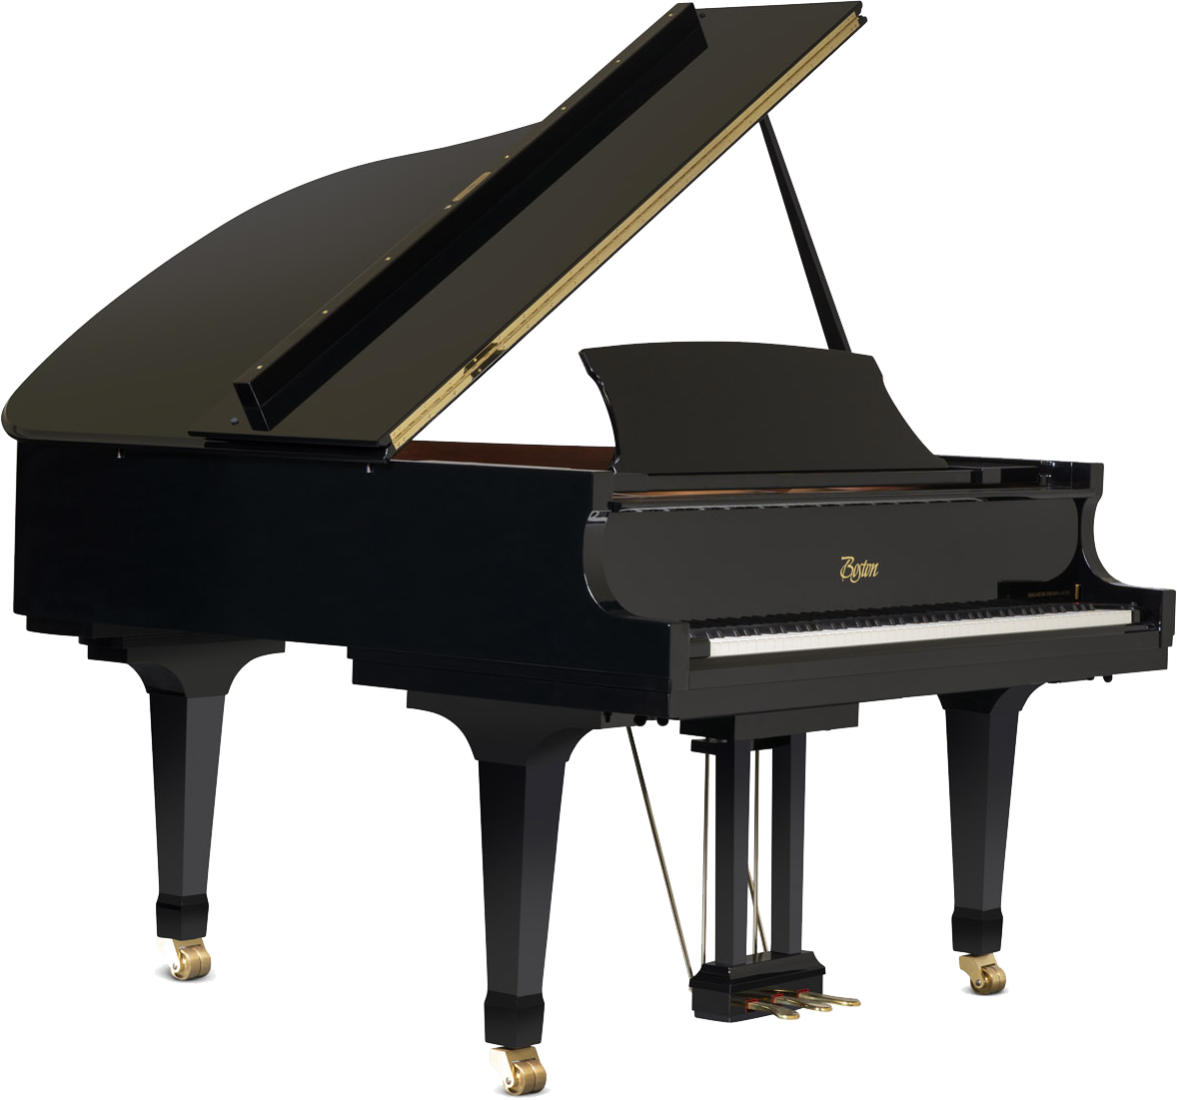 piano-cola-boston-gp163-profesional-nuevo-performance-edition-negro-lateral copia